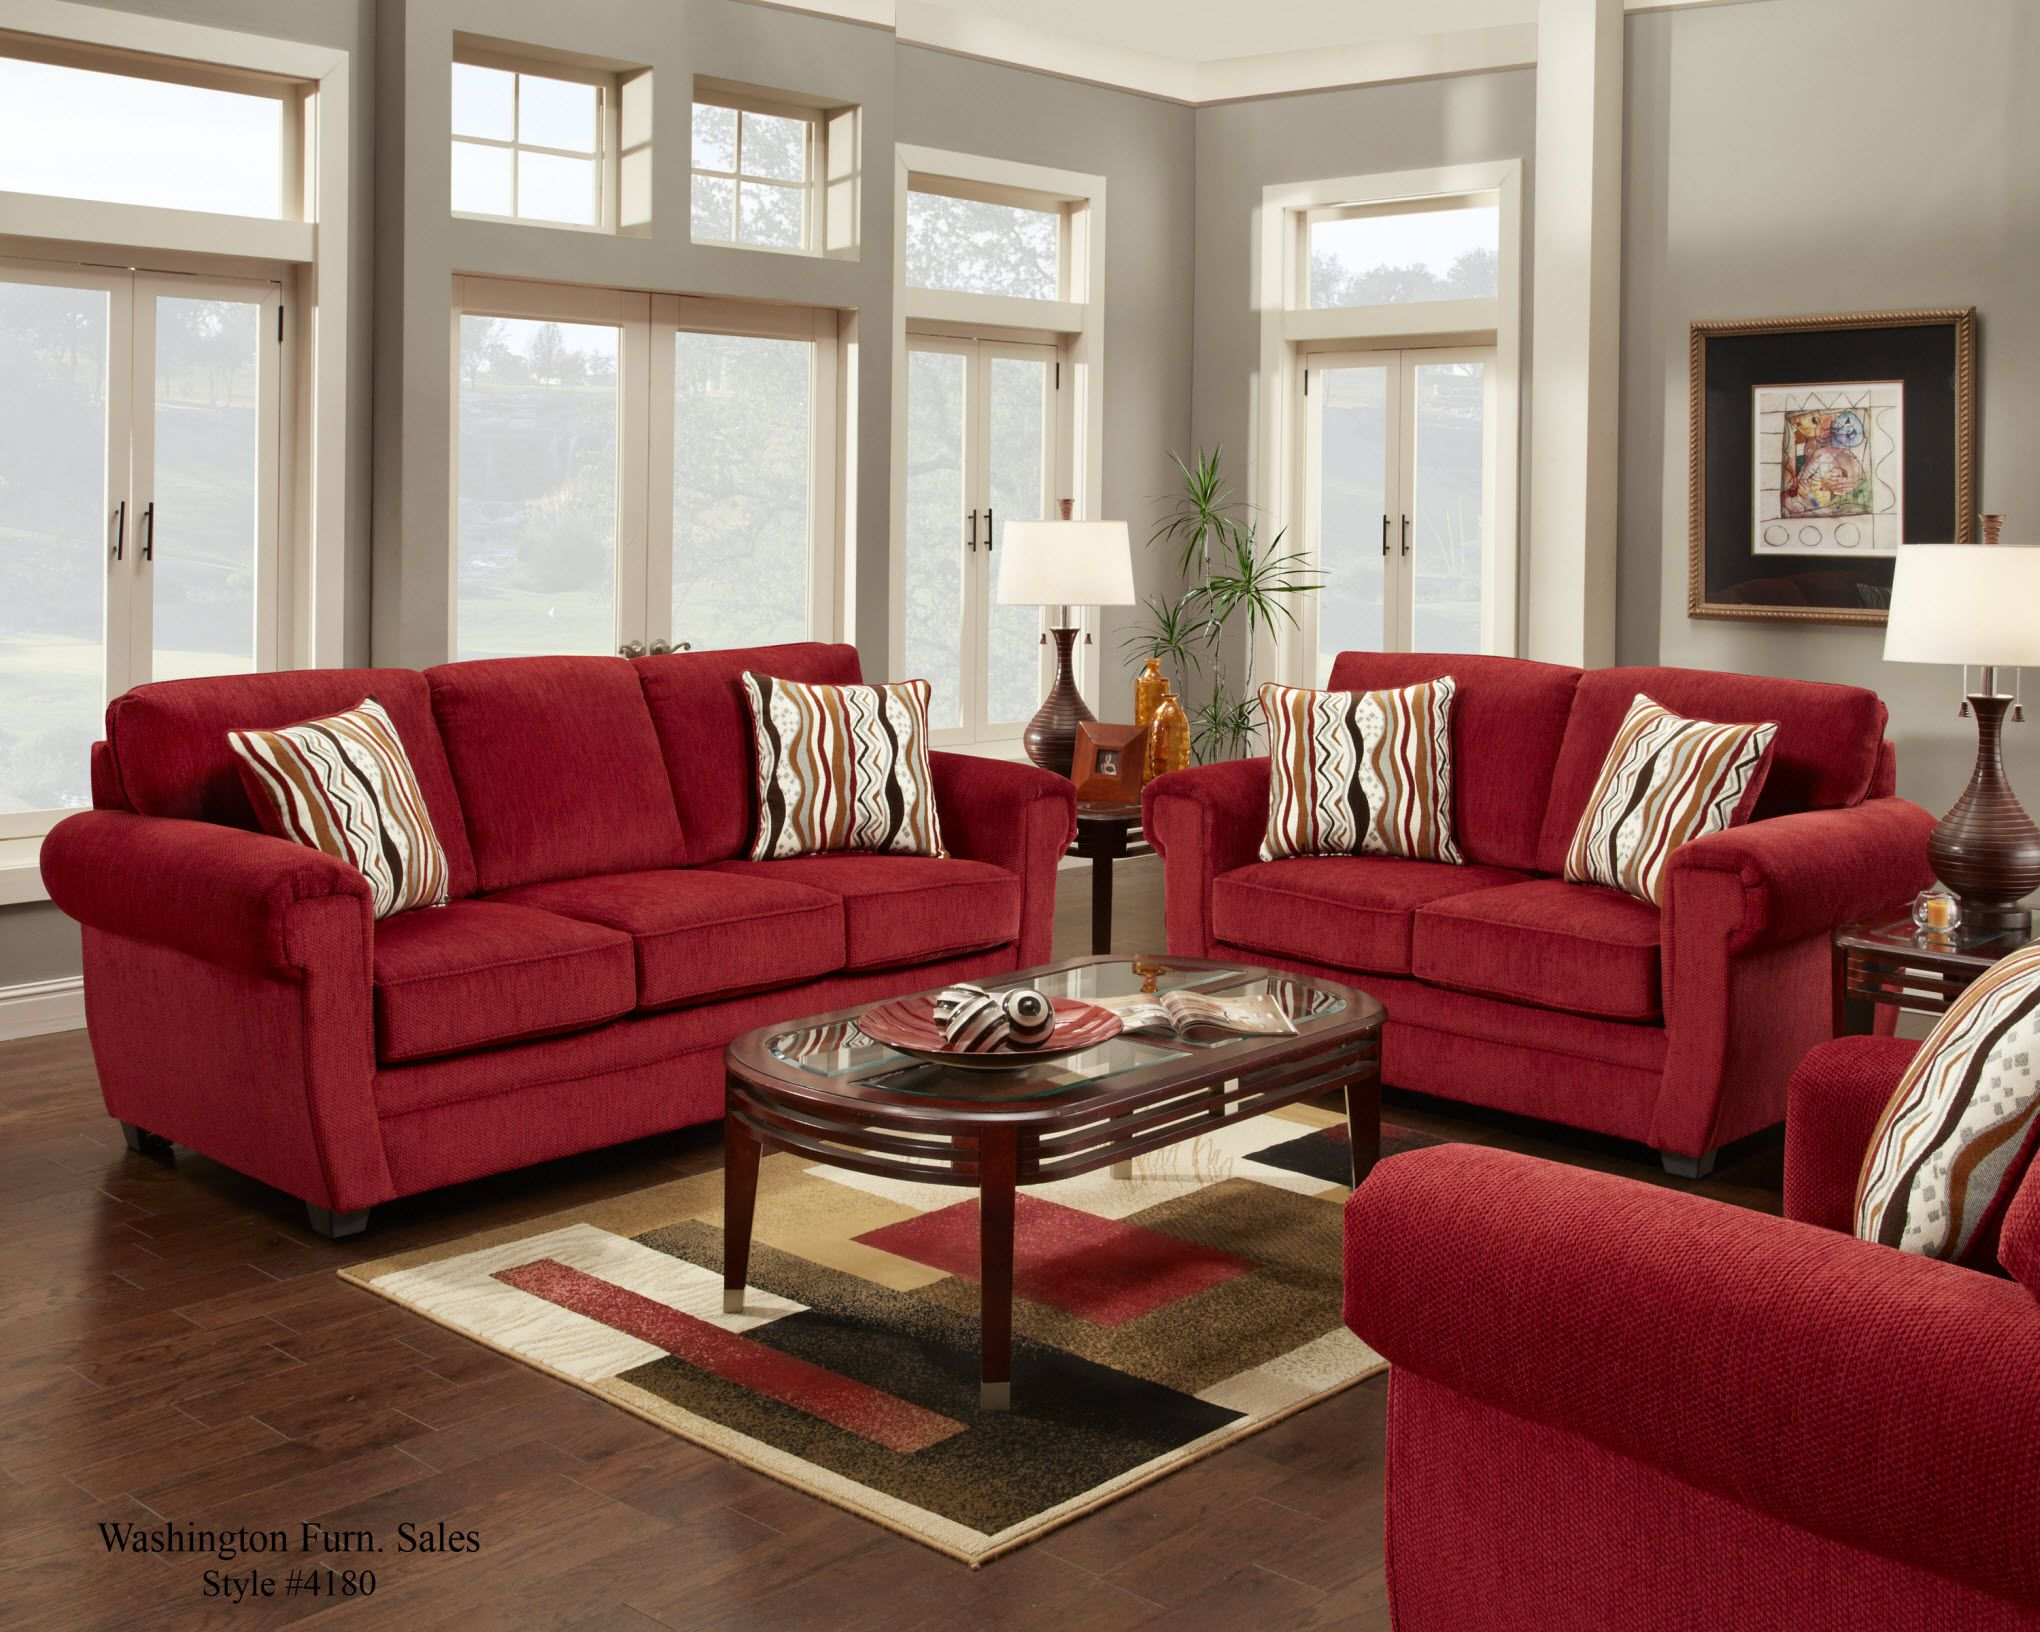 4180 washington samson red sofa and loveseat www What color room